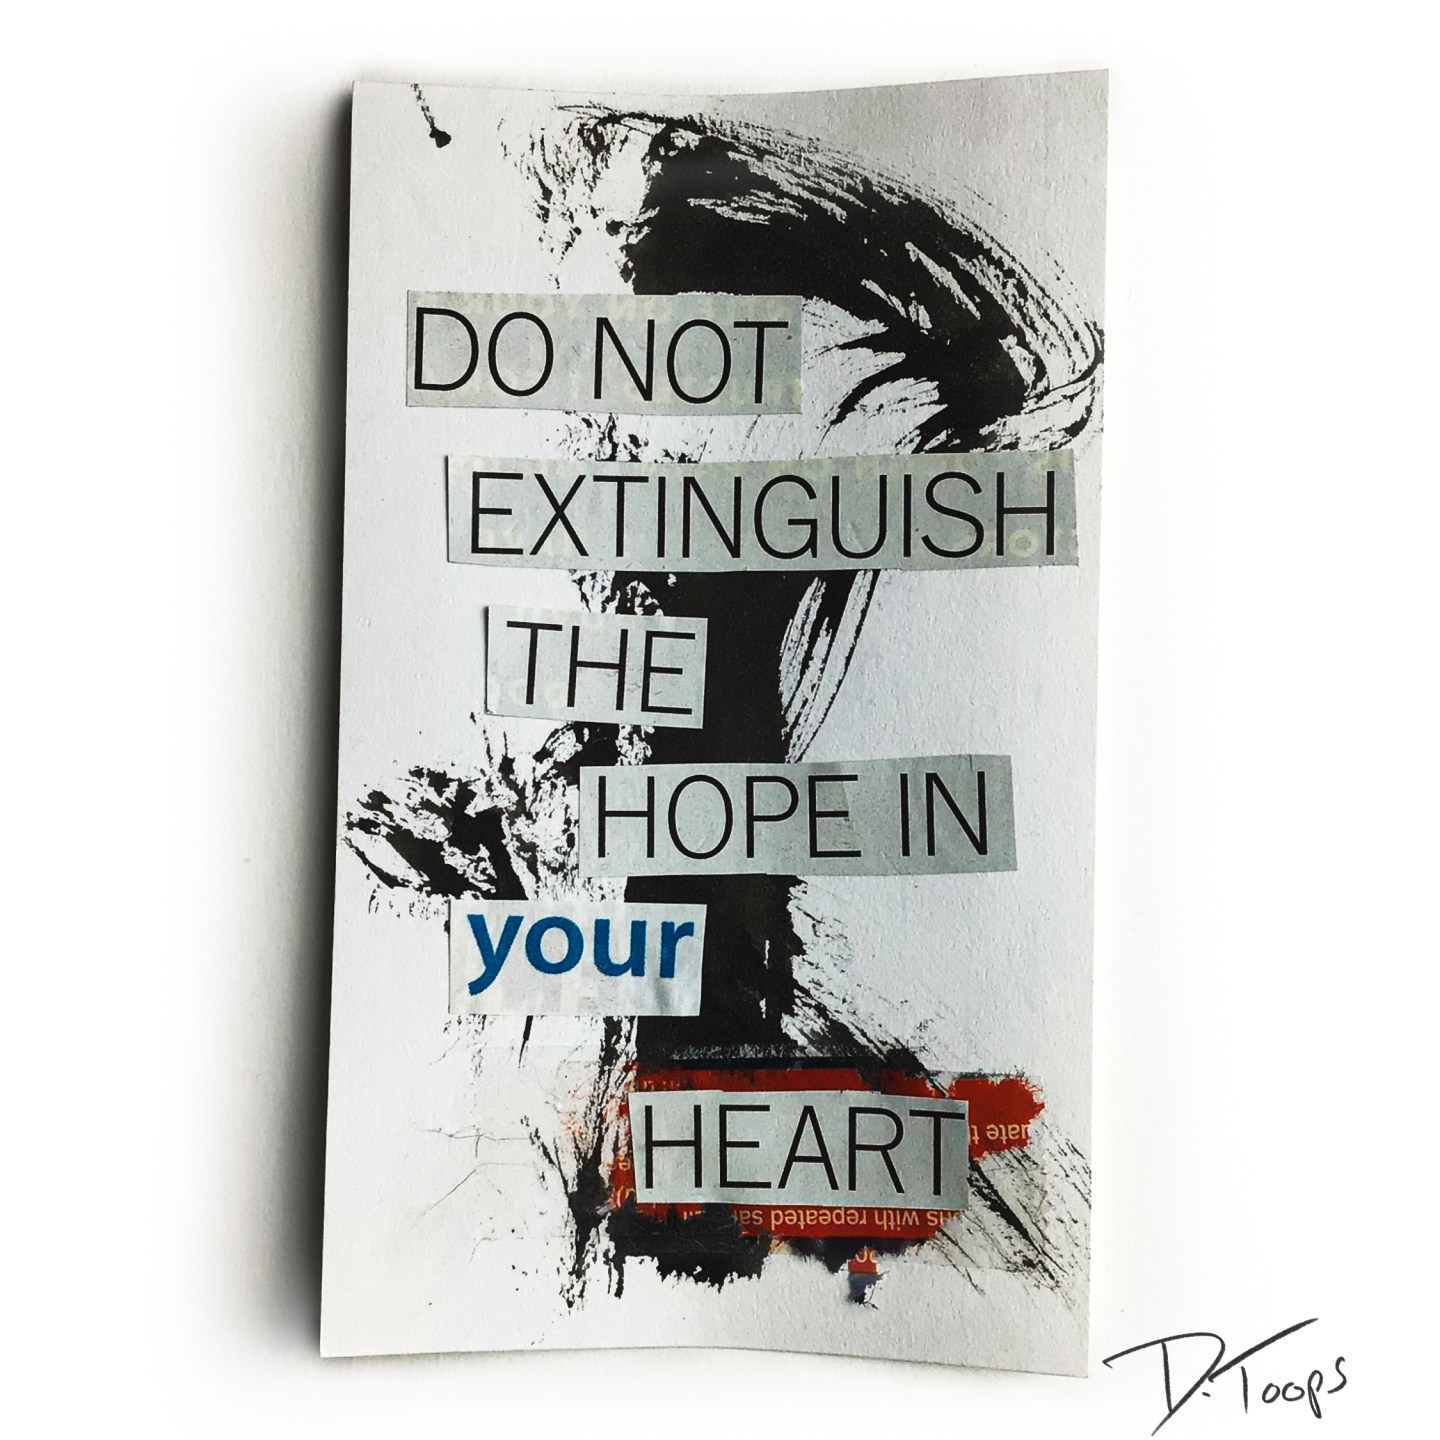 Do not extinguish the hope in your heart…